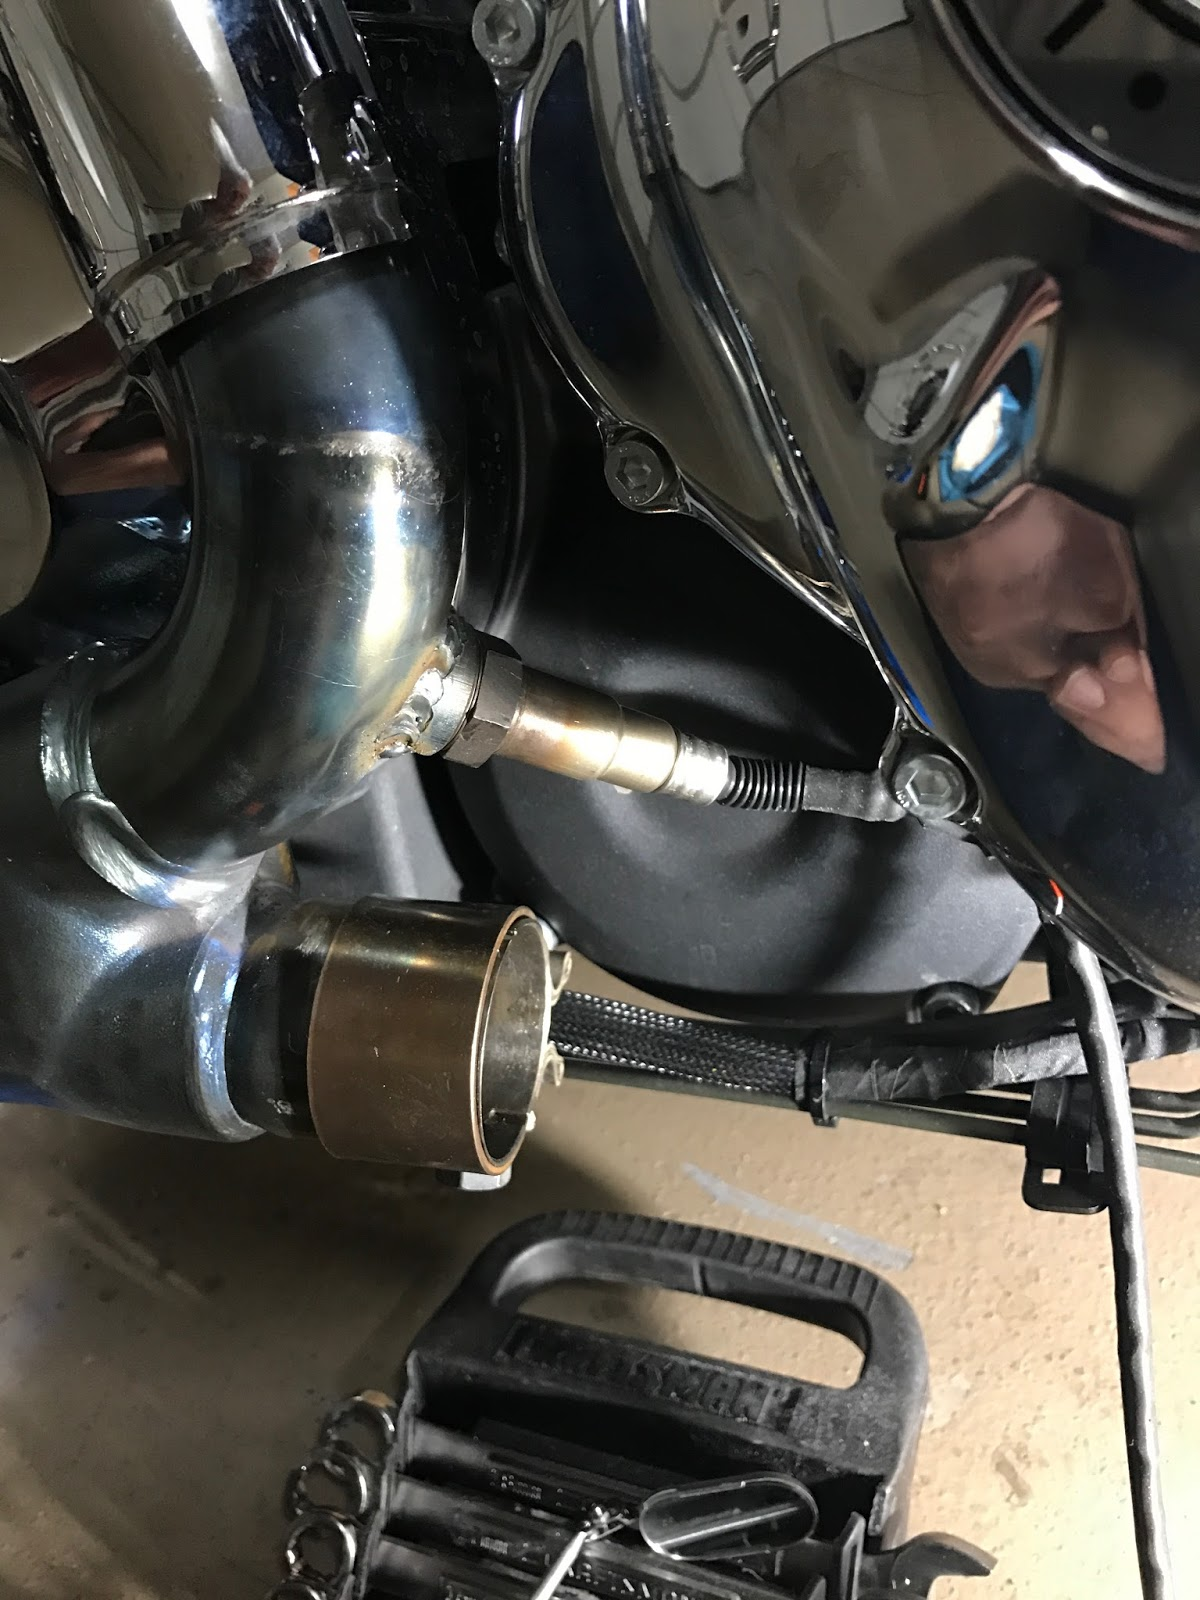 My Indian Roadmaster: Installing Wideband O2 Sensors